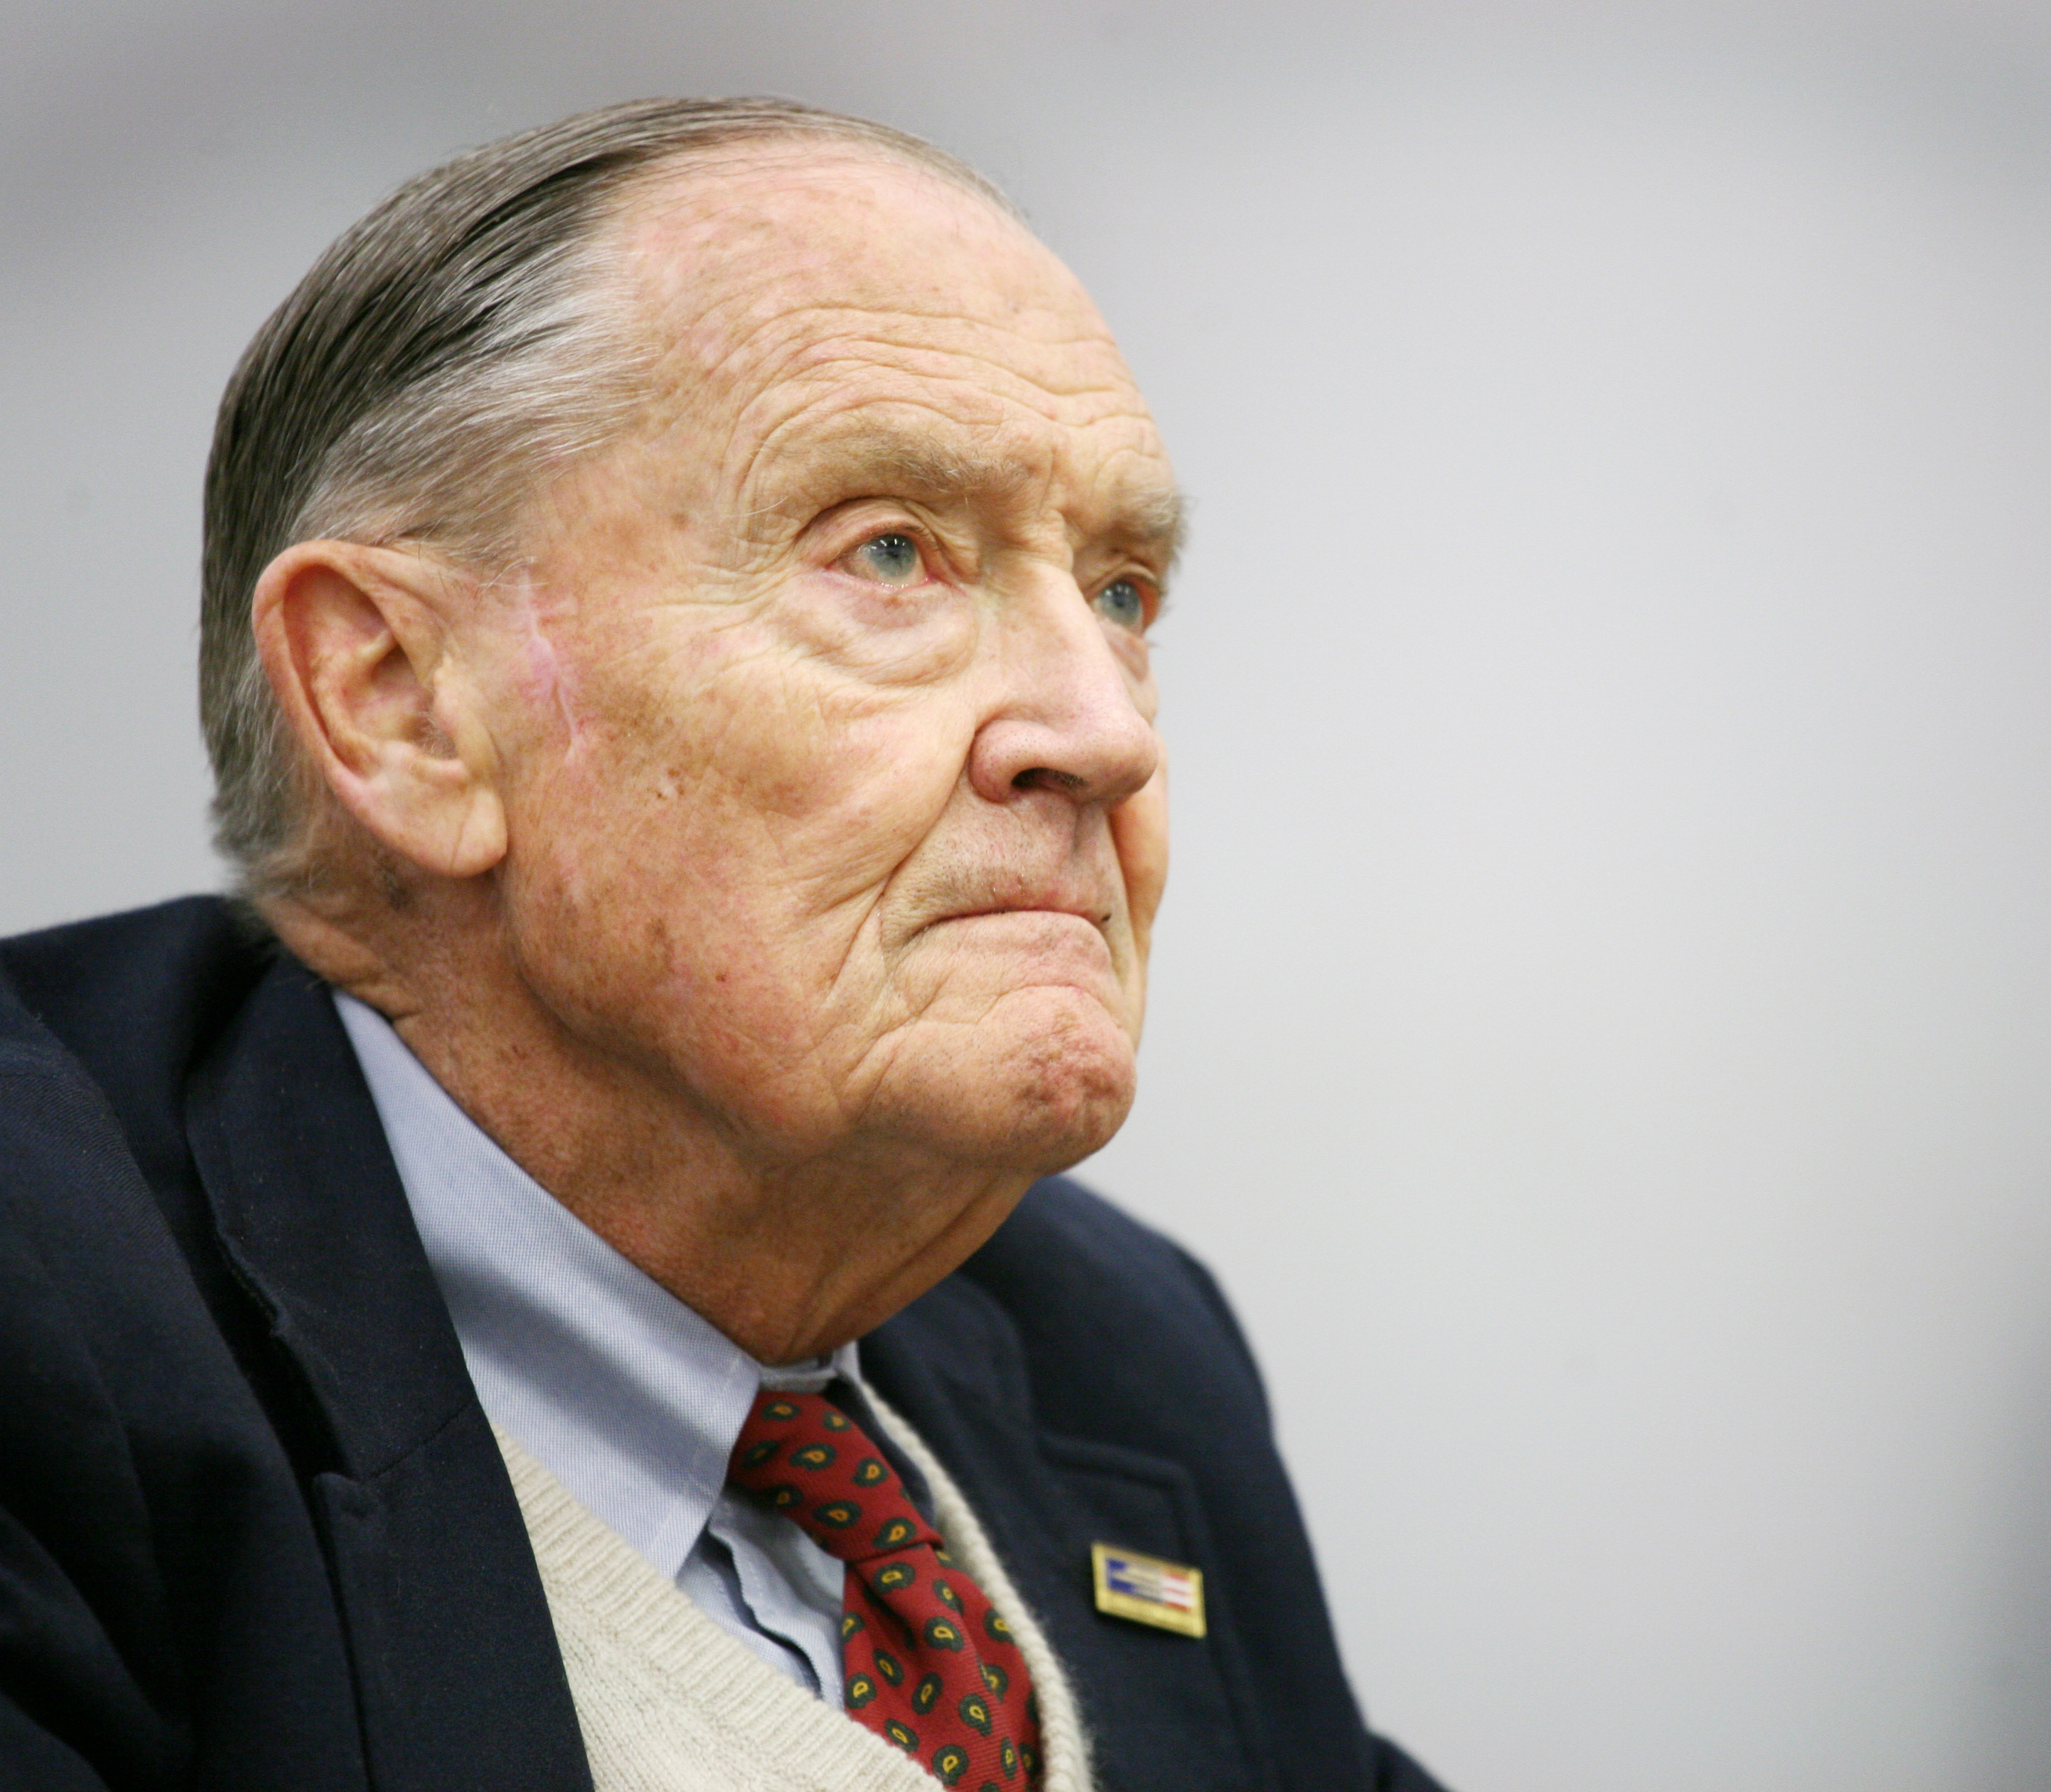 John Bogle, founder of The Vanguard Group, listens during an interview at The Associated Press on in New York on May 20, 2008. Bogle died on Jan. 16, 2019 at the age of 89.